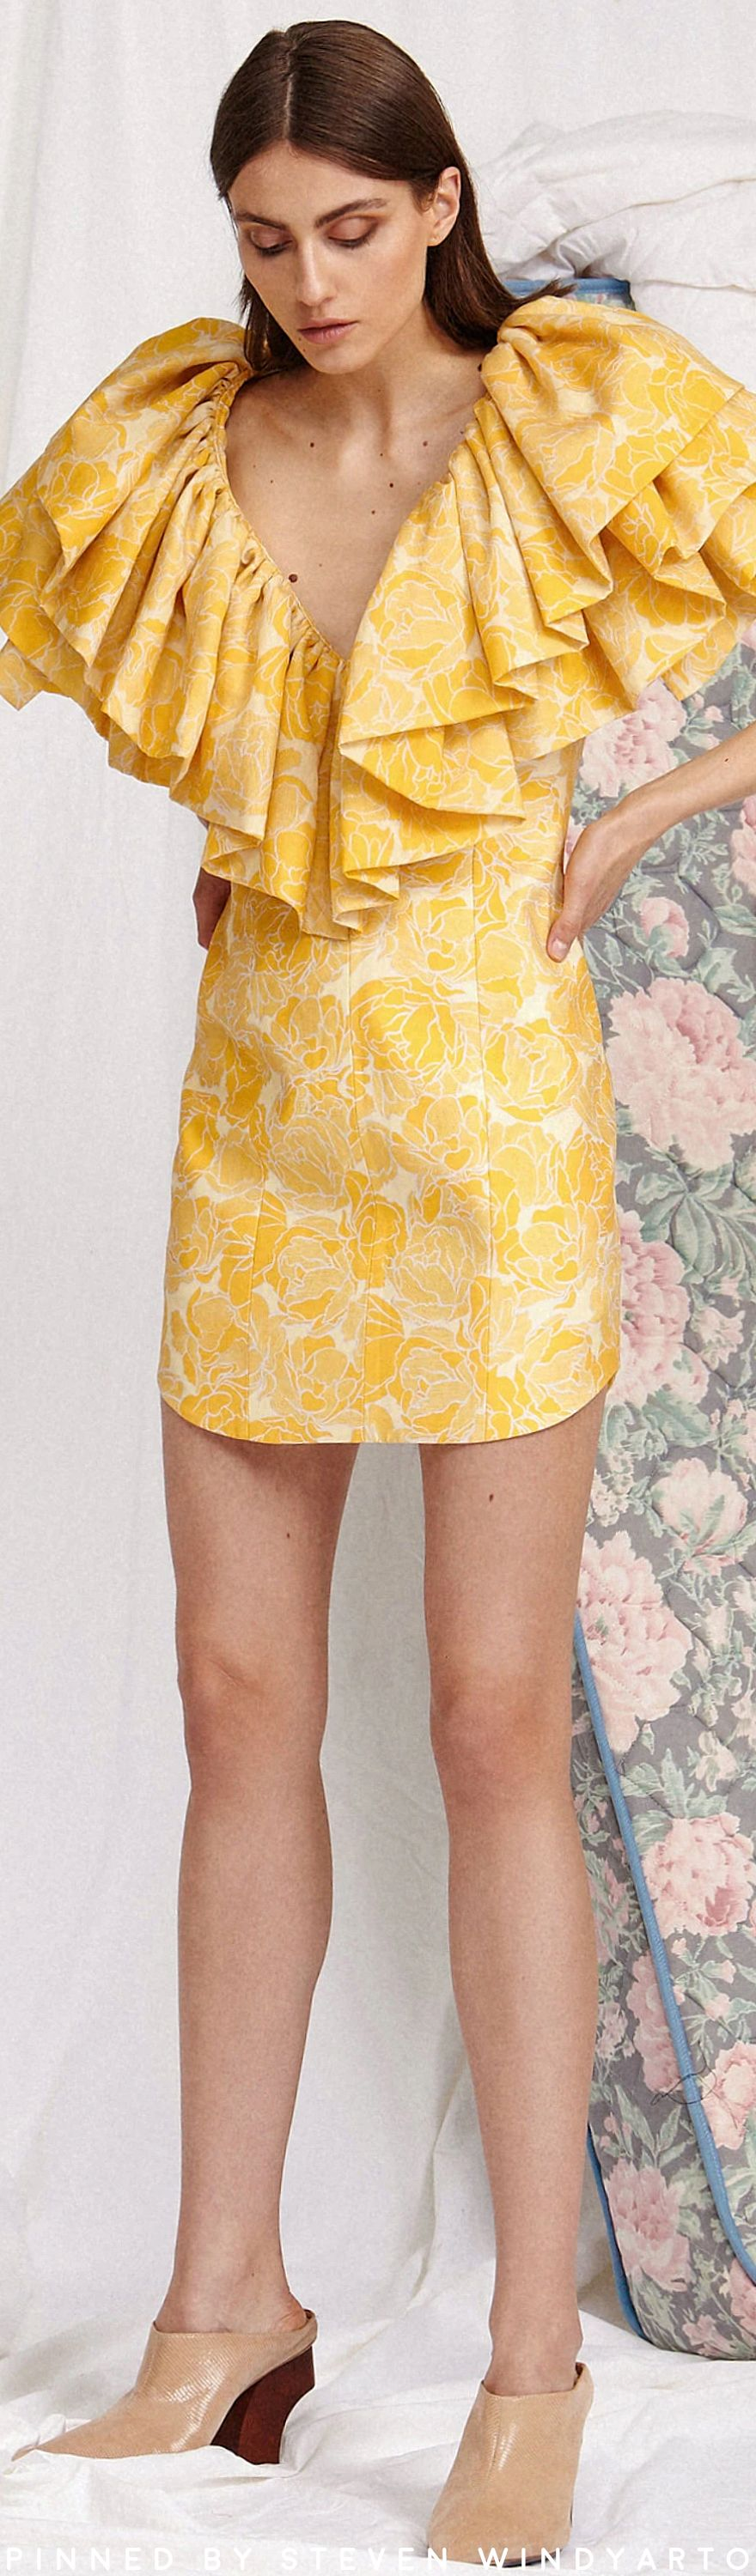 Acler Resort 2020 Yellow Fashion Fashion Clothes Design